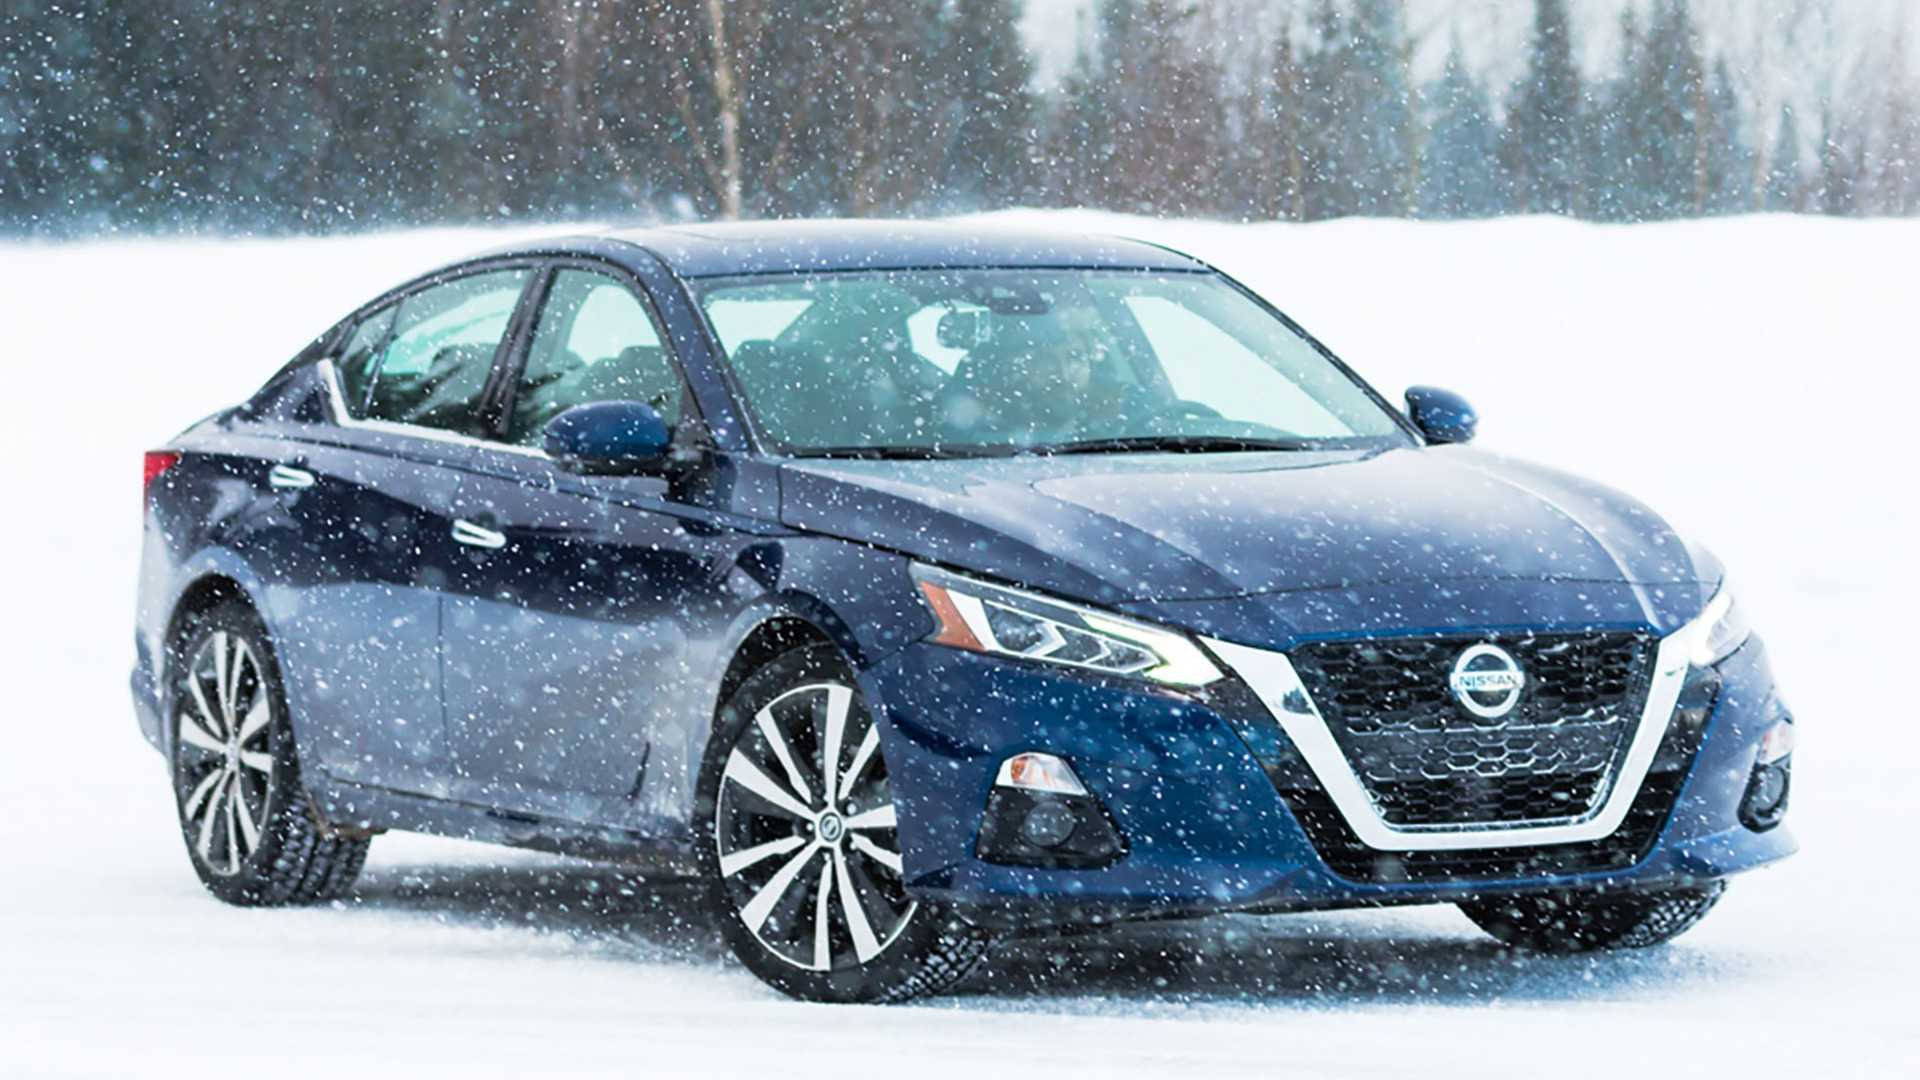 79 Great The 2019 Nissan Altima Horsepower First Drive Rumors by The 2019 Nissan Altima Horsepower First Drive